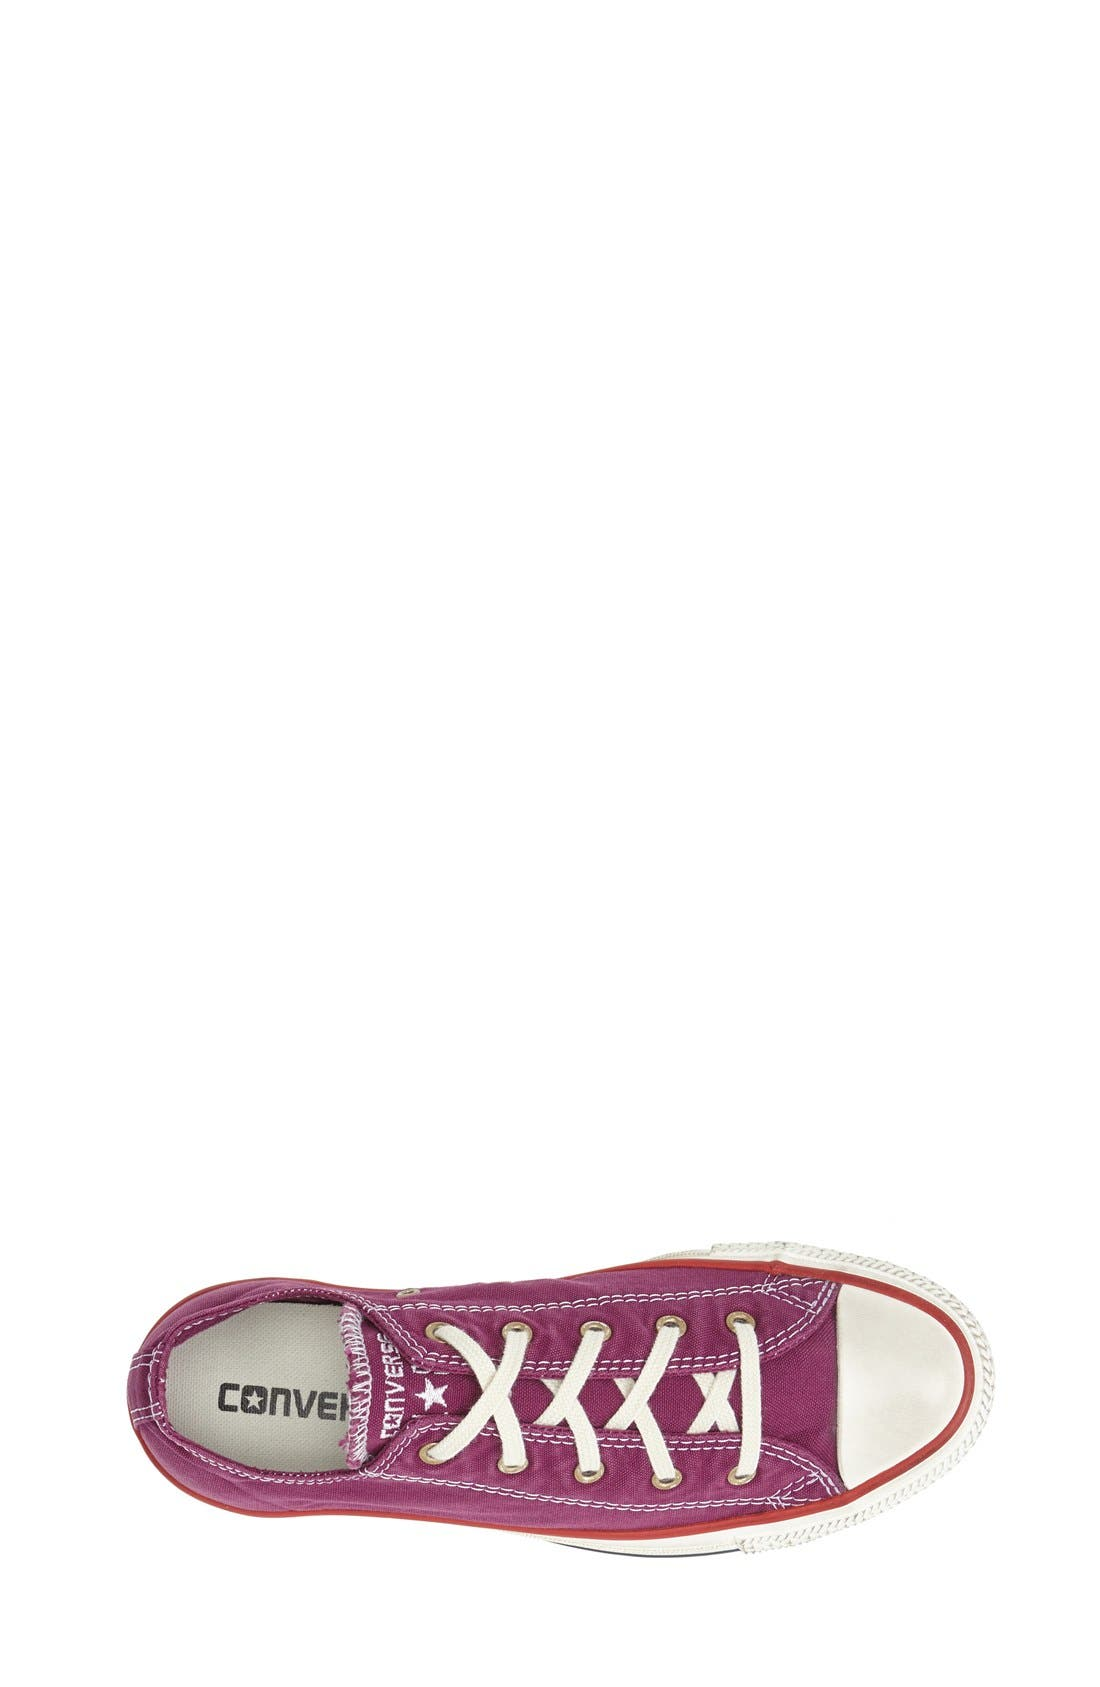 Alternate Image 3  - Converse Chuck Taylor® All Star® Washed Low Sneaker (Women)